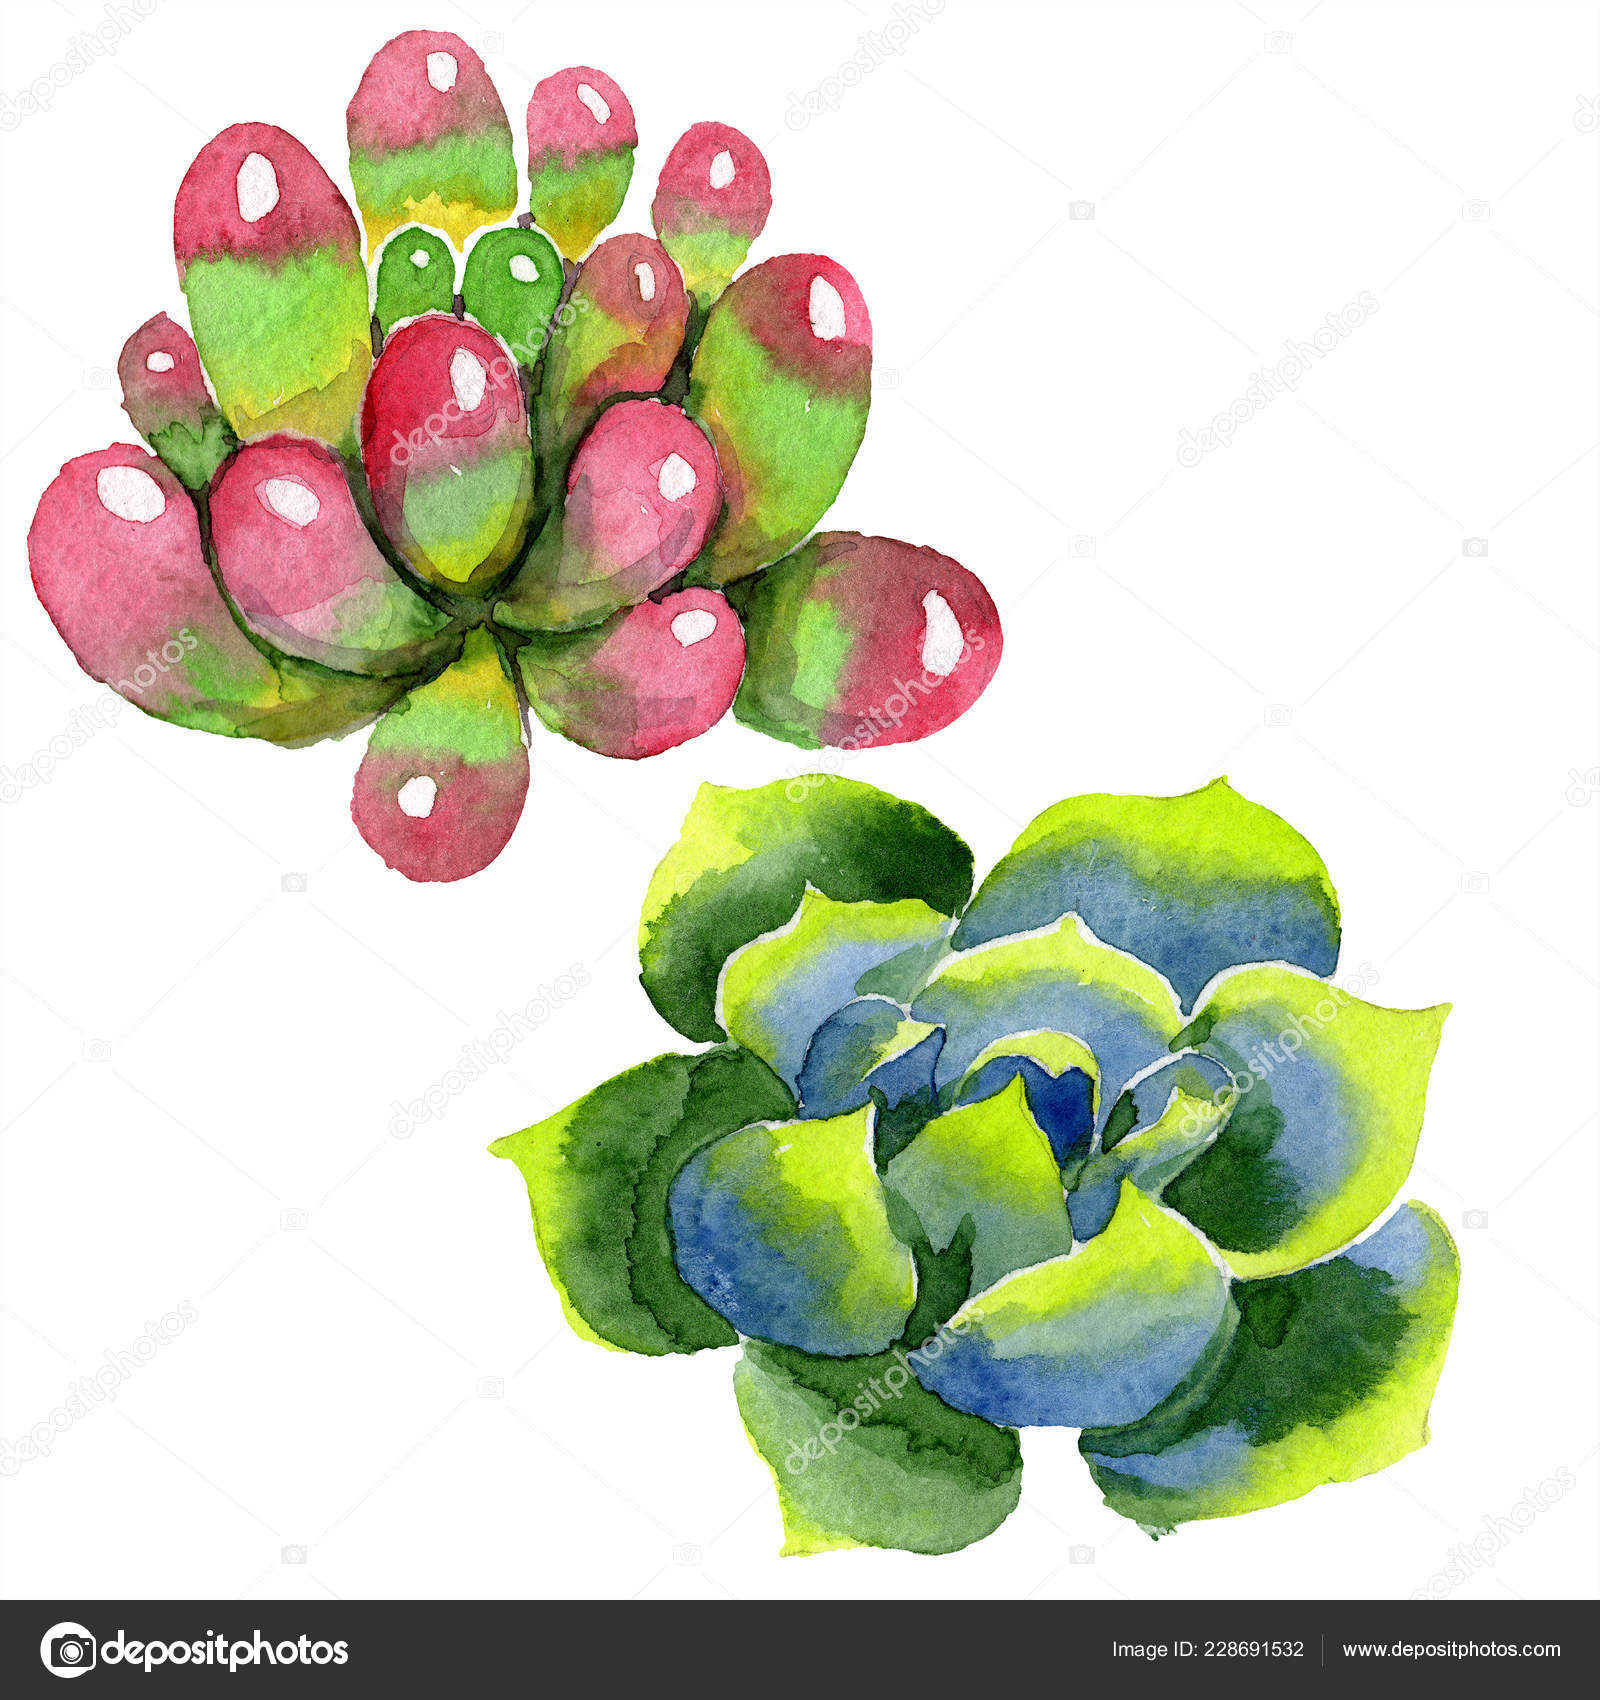 Background Succulents Drawing Amazing Succulents Watercolor Background Illustration Aquarelle Hand Drawing Isolated Succulent Stock Photo C Andreyanush 228691532